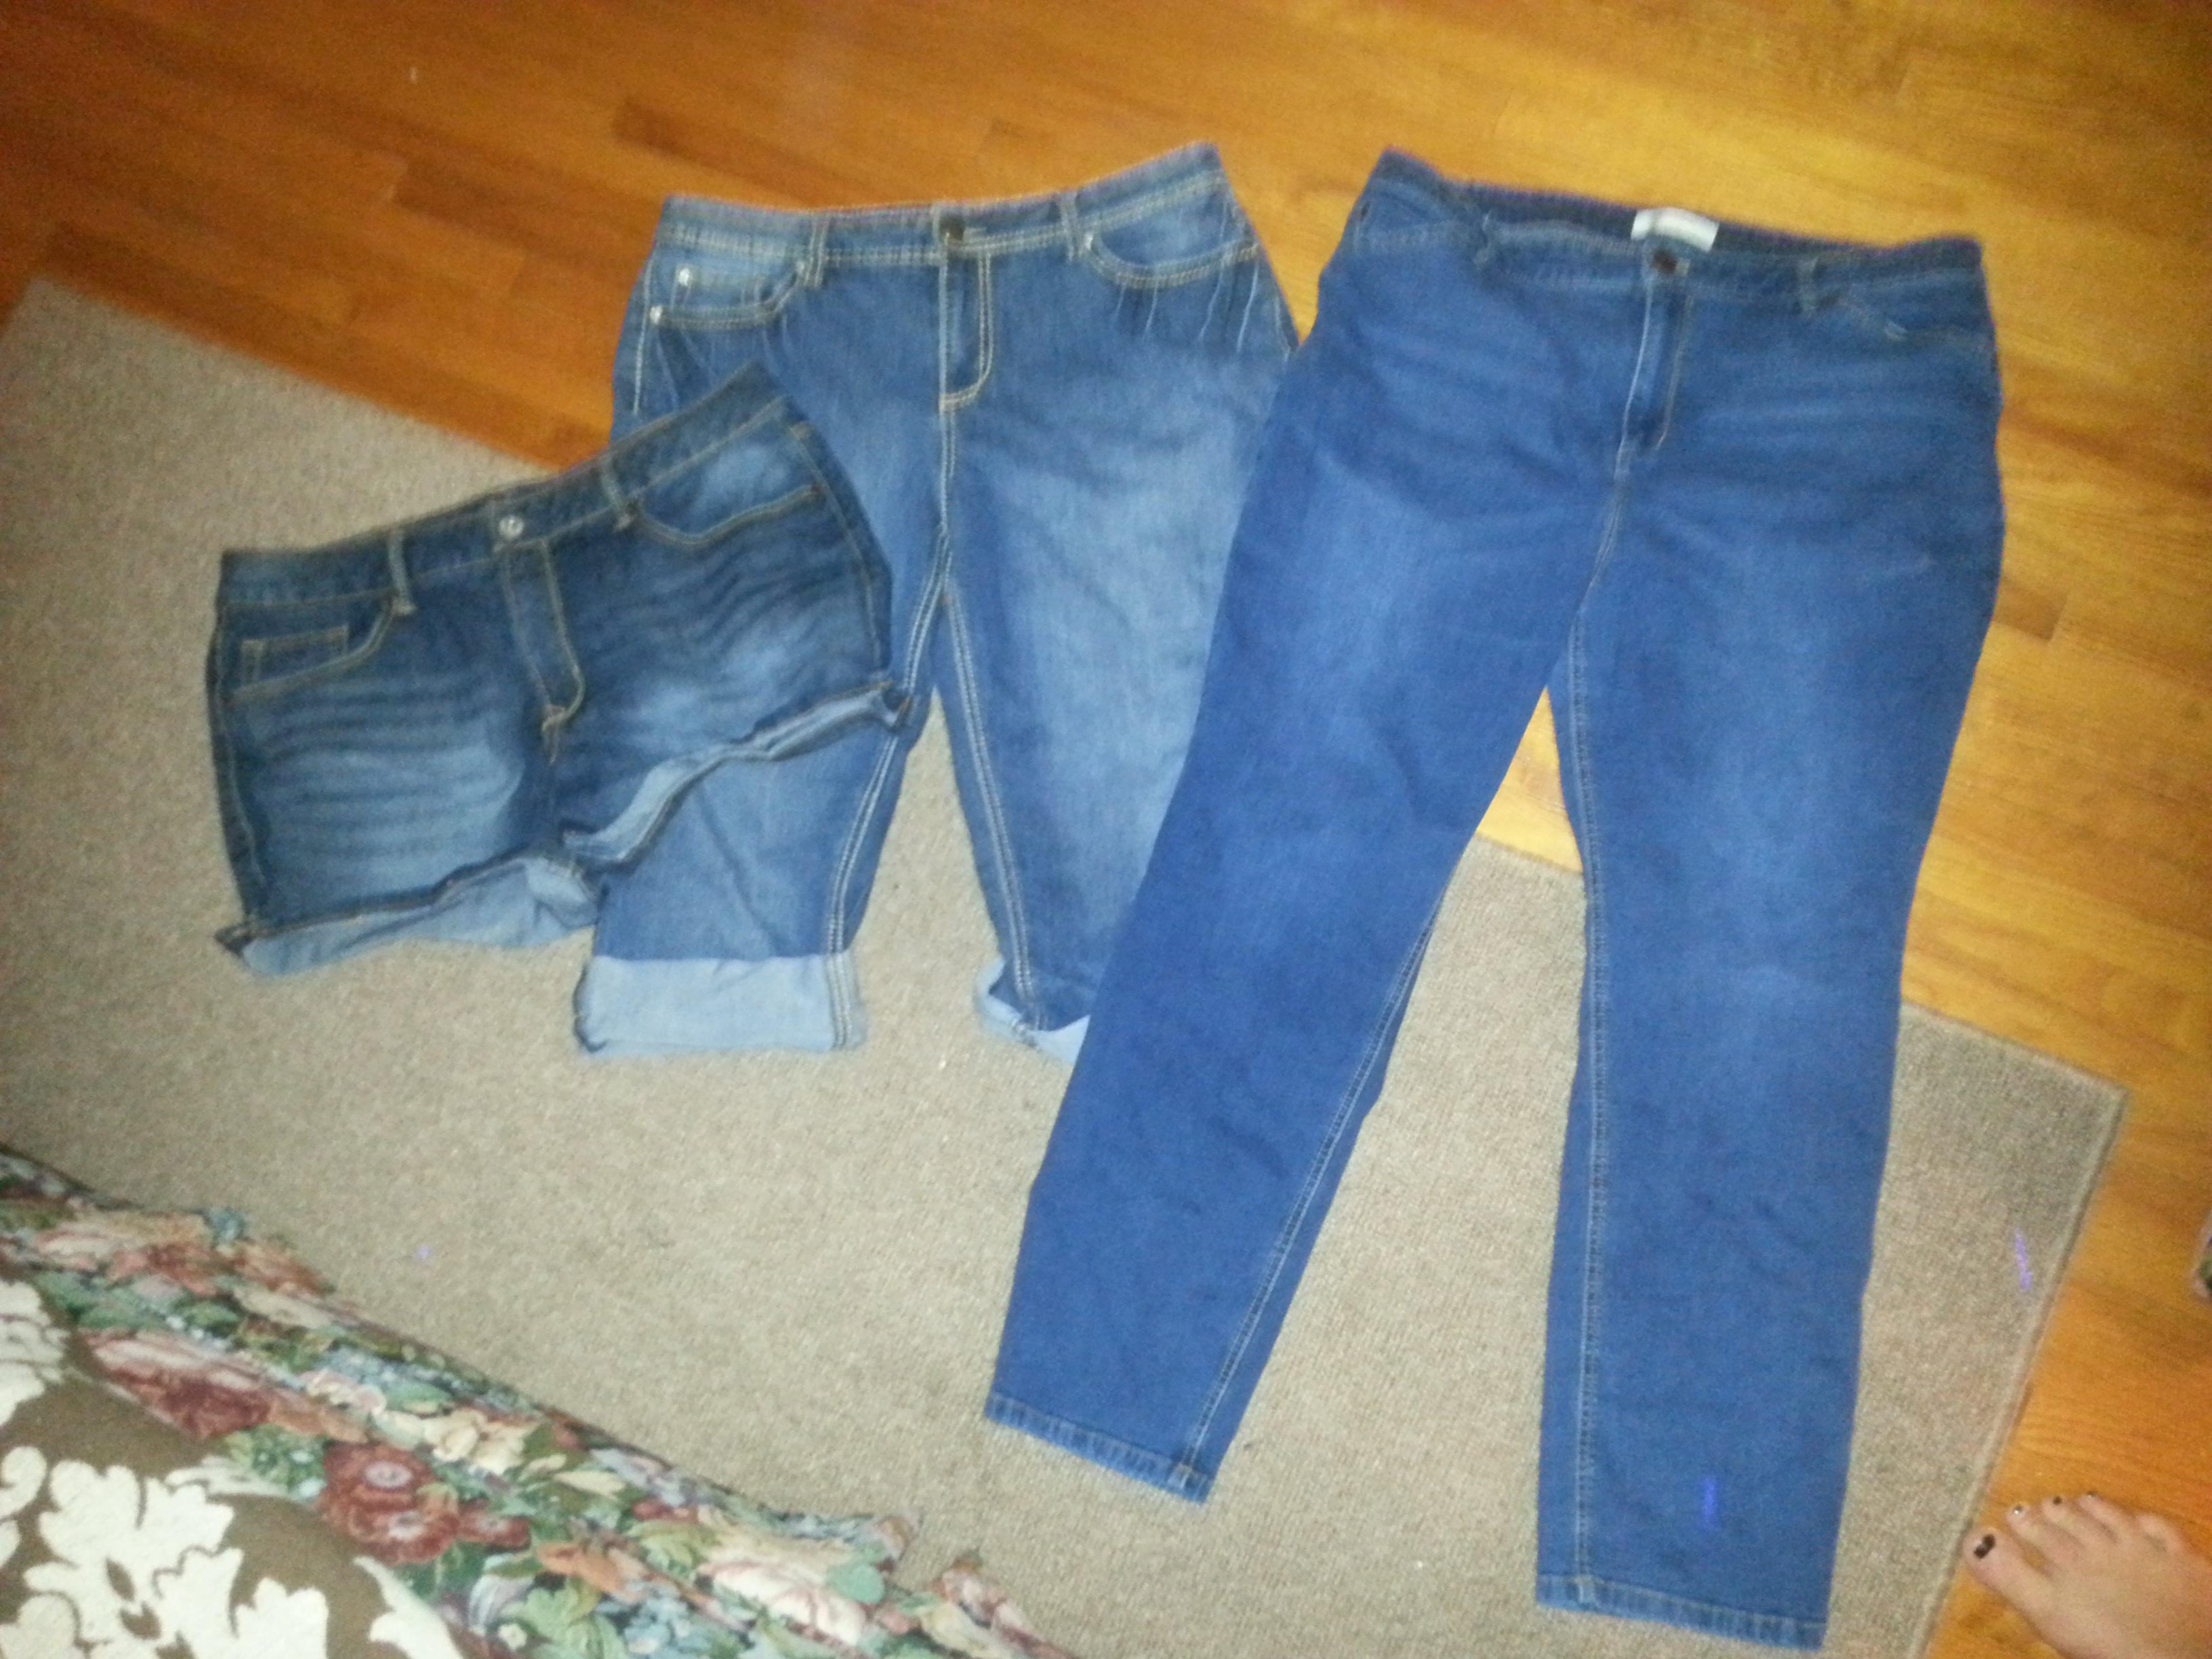 too big jeans beinh sold on ebay